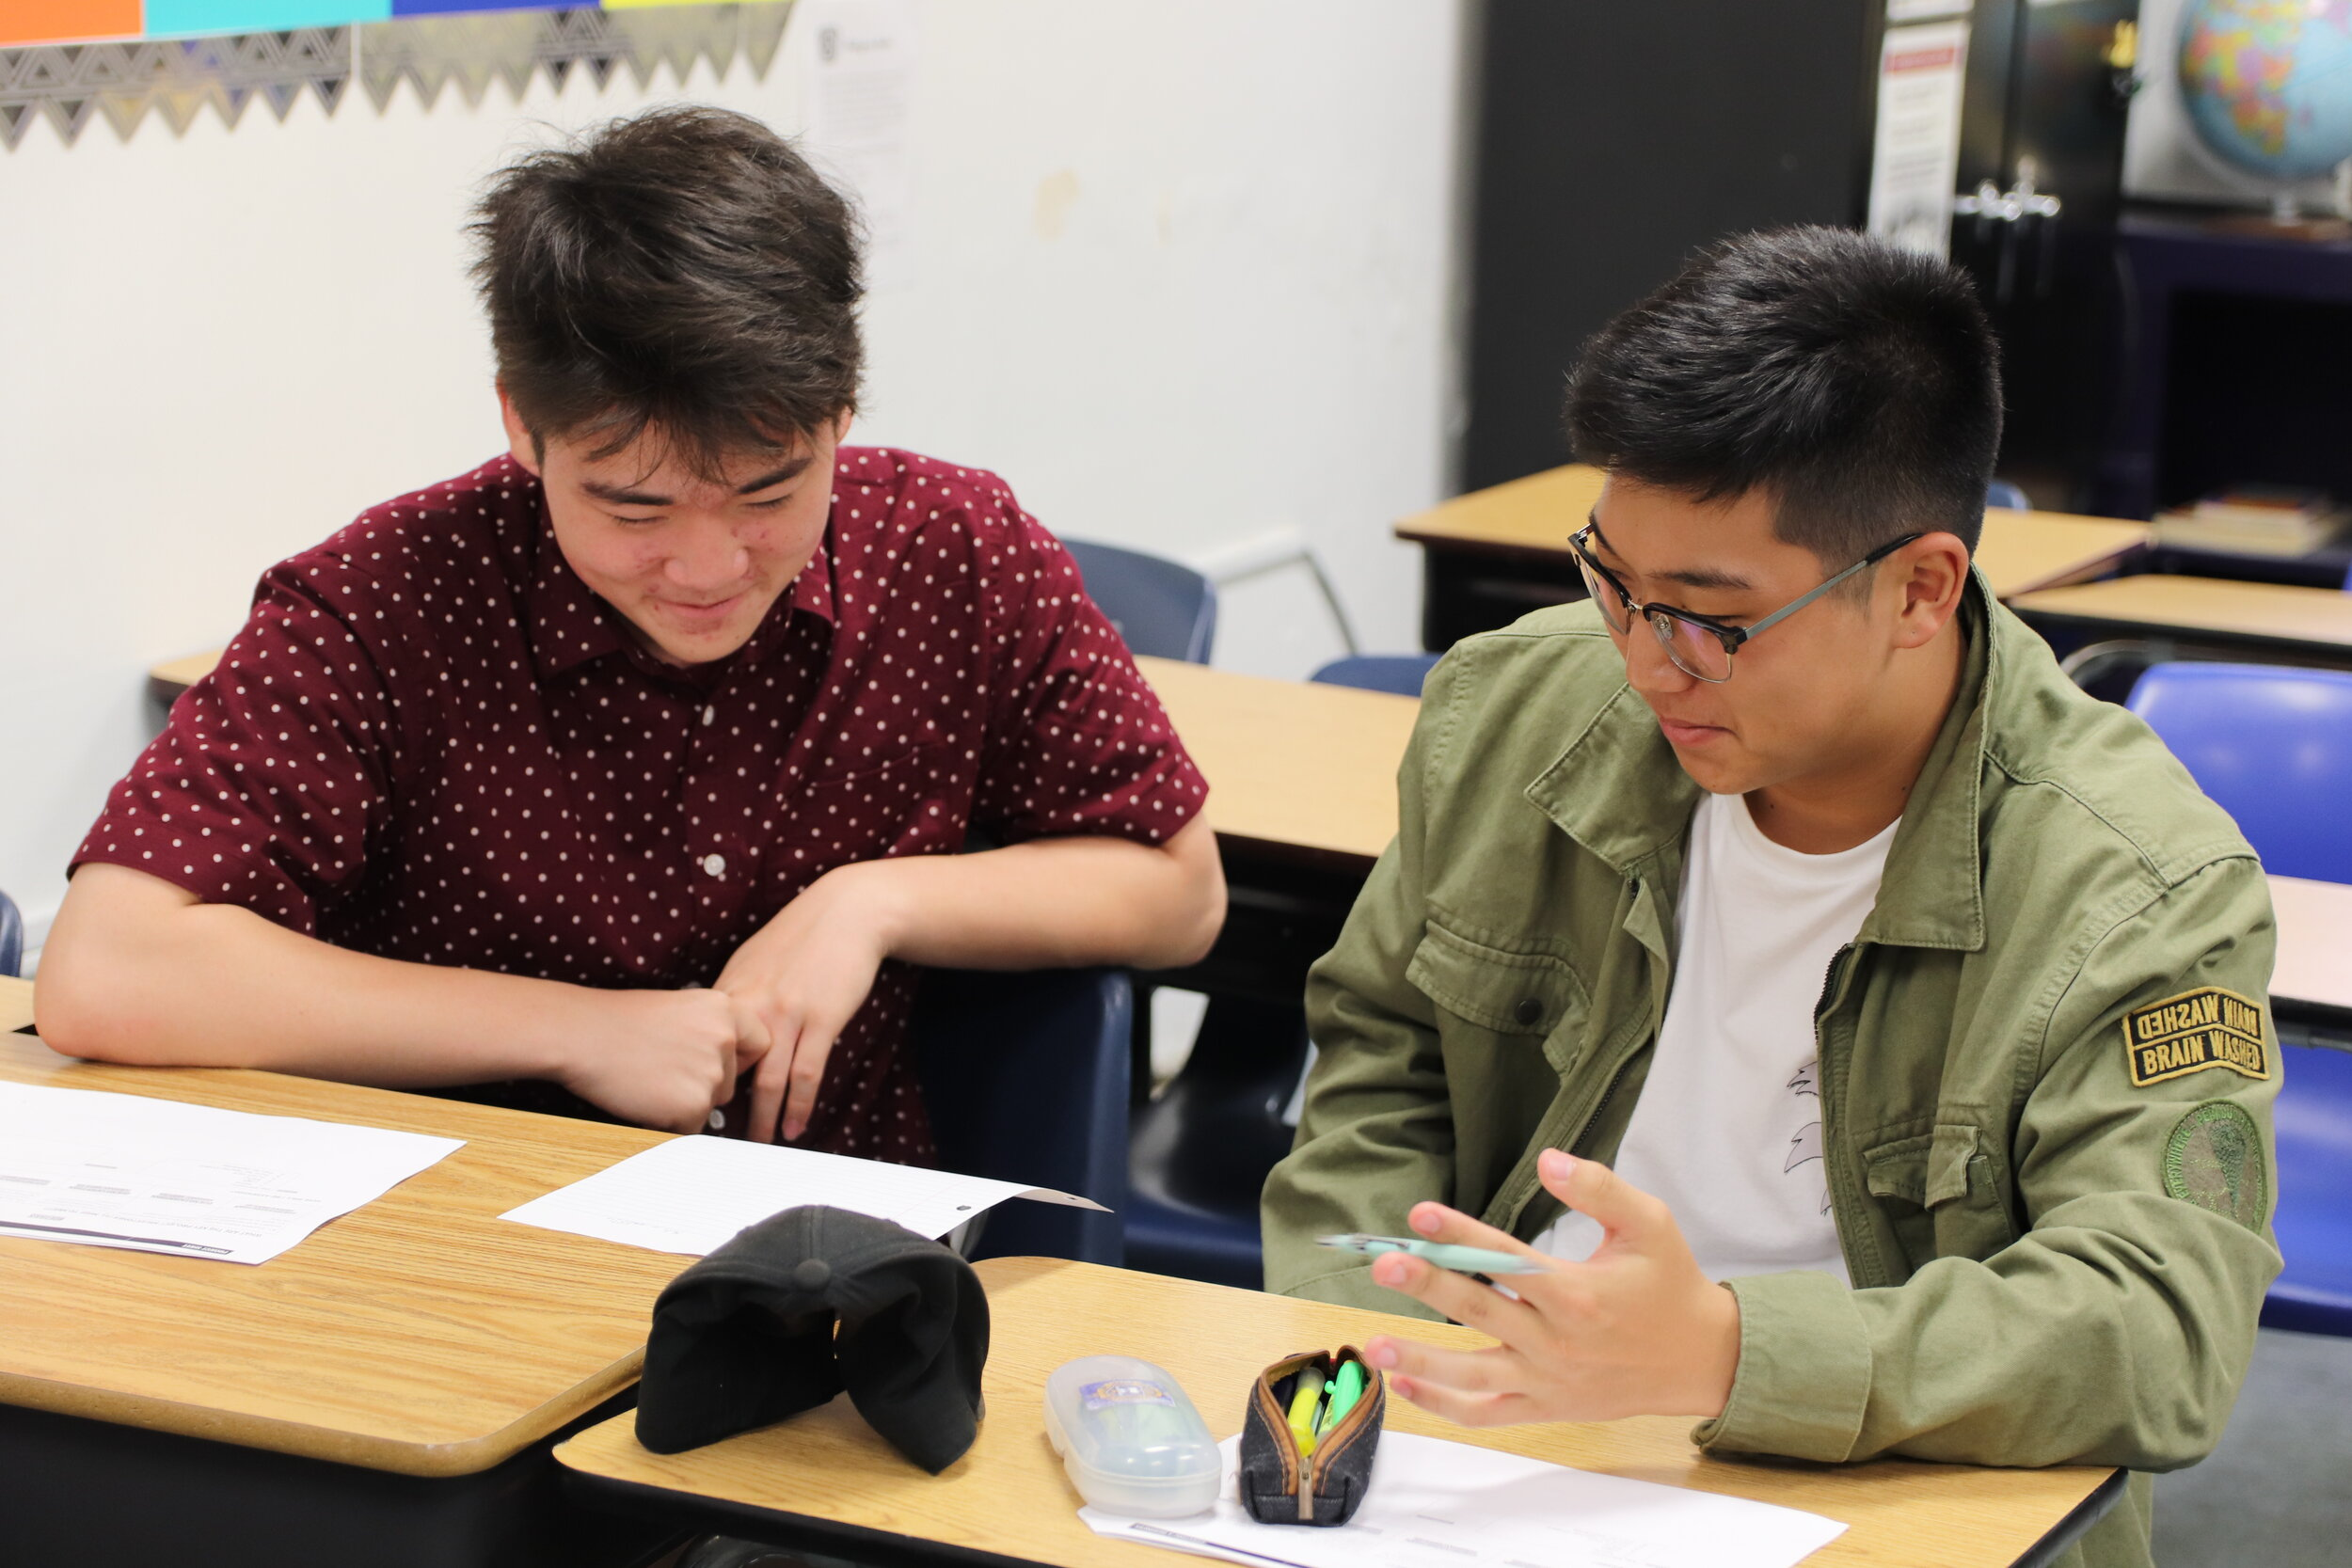 High School (9-12) - NCA's High School students are all 4-year college bound. As such, students take not only required a-g courses (UC required), but additional years in those subjects. NCA is renowned for the IB Diploma Program.